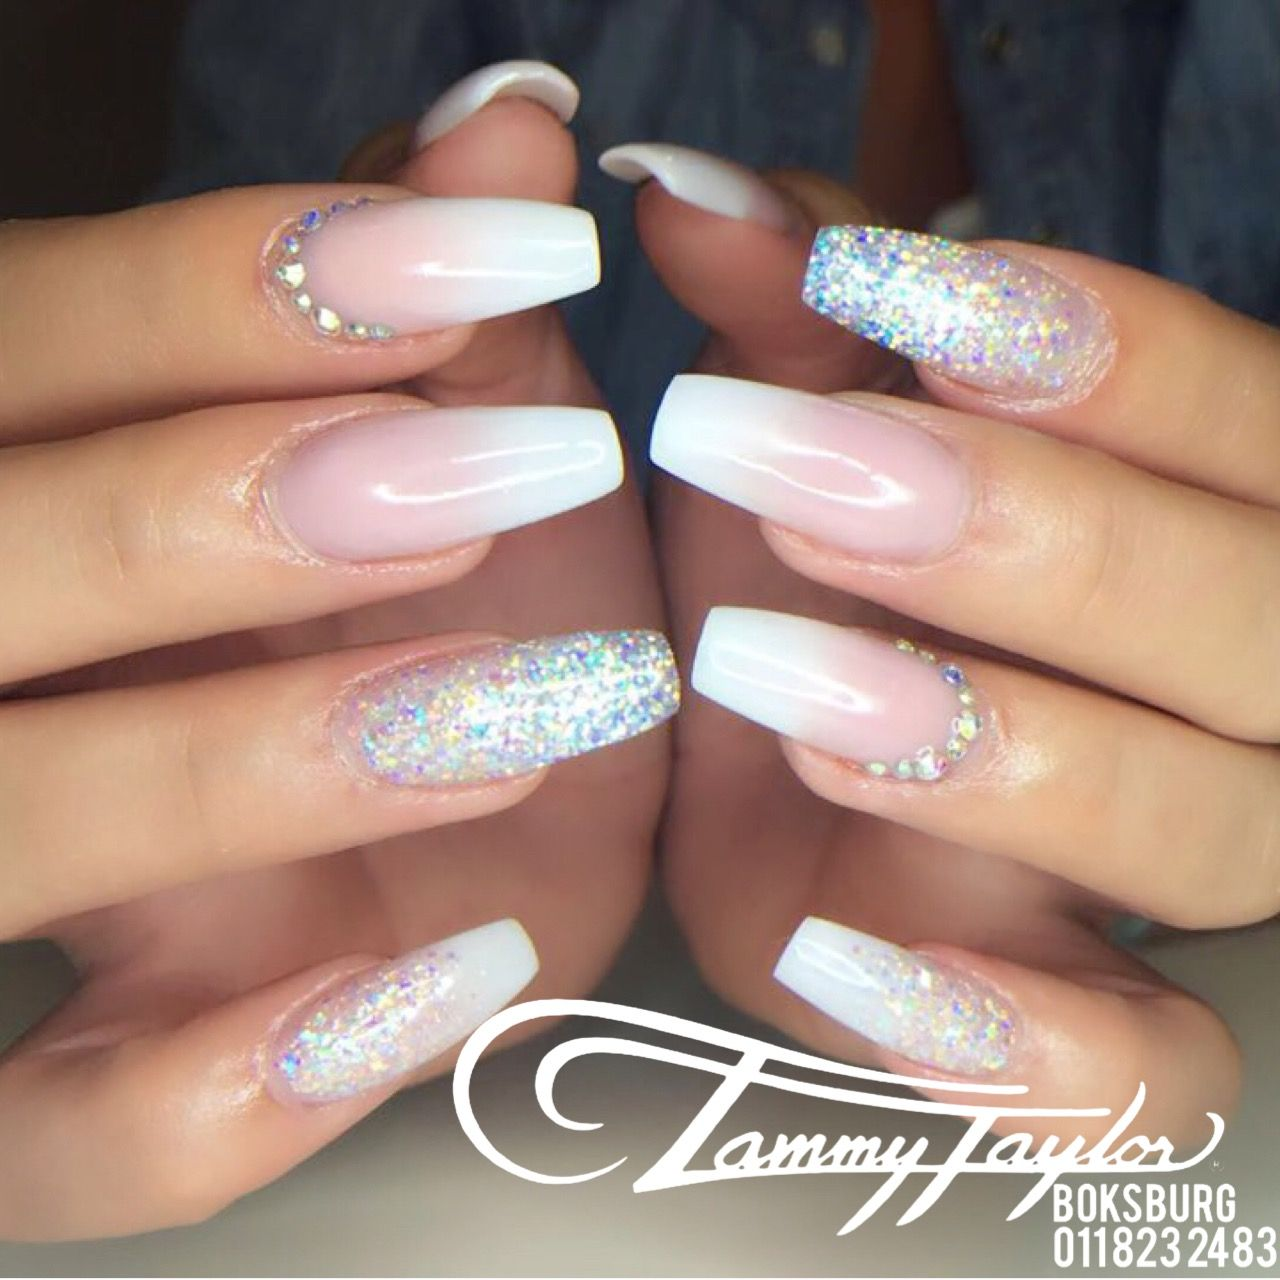 French Fade Nails + Crystals #tammytaylor | nayls | Pinterest ...